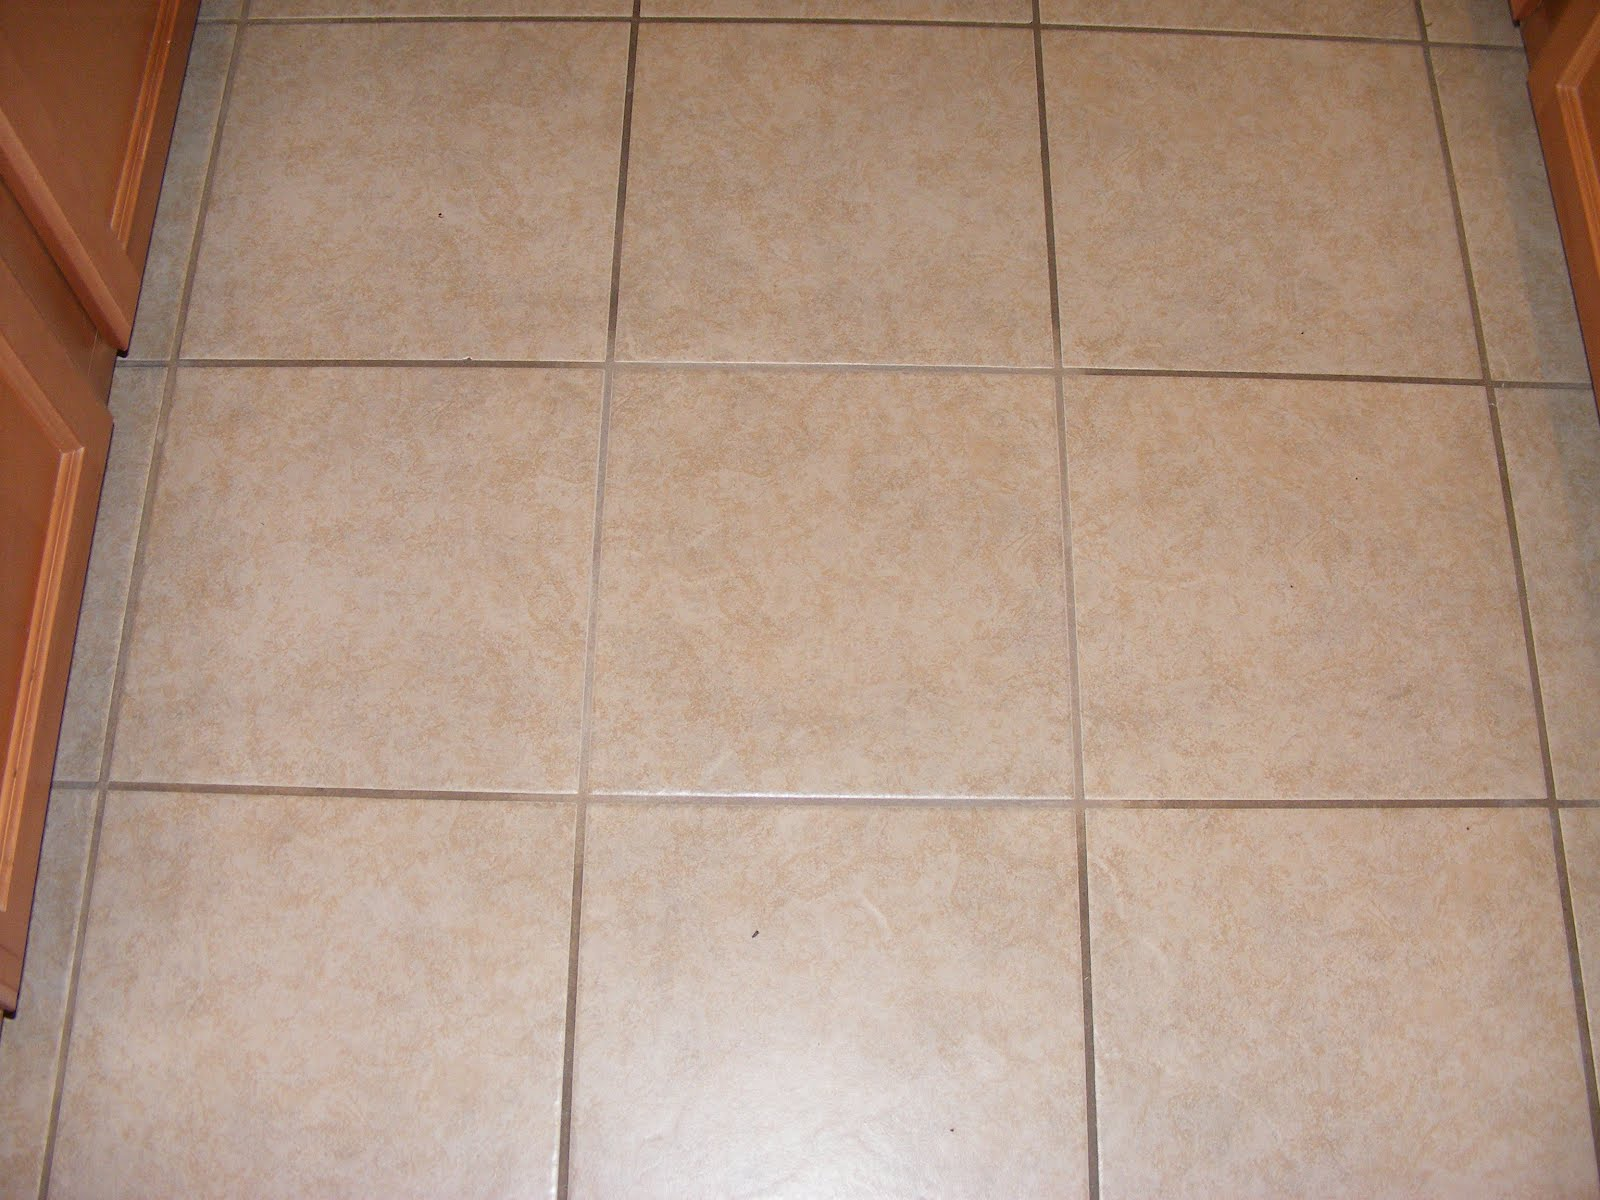 Amazing Grout Cleaner - Clean and reseal grout